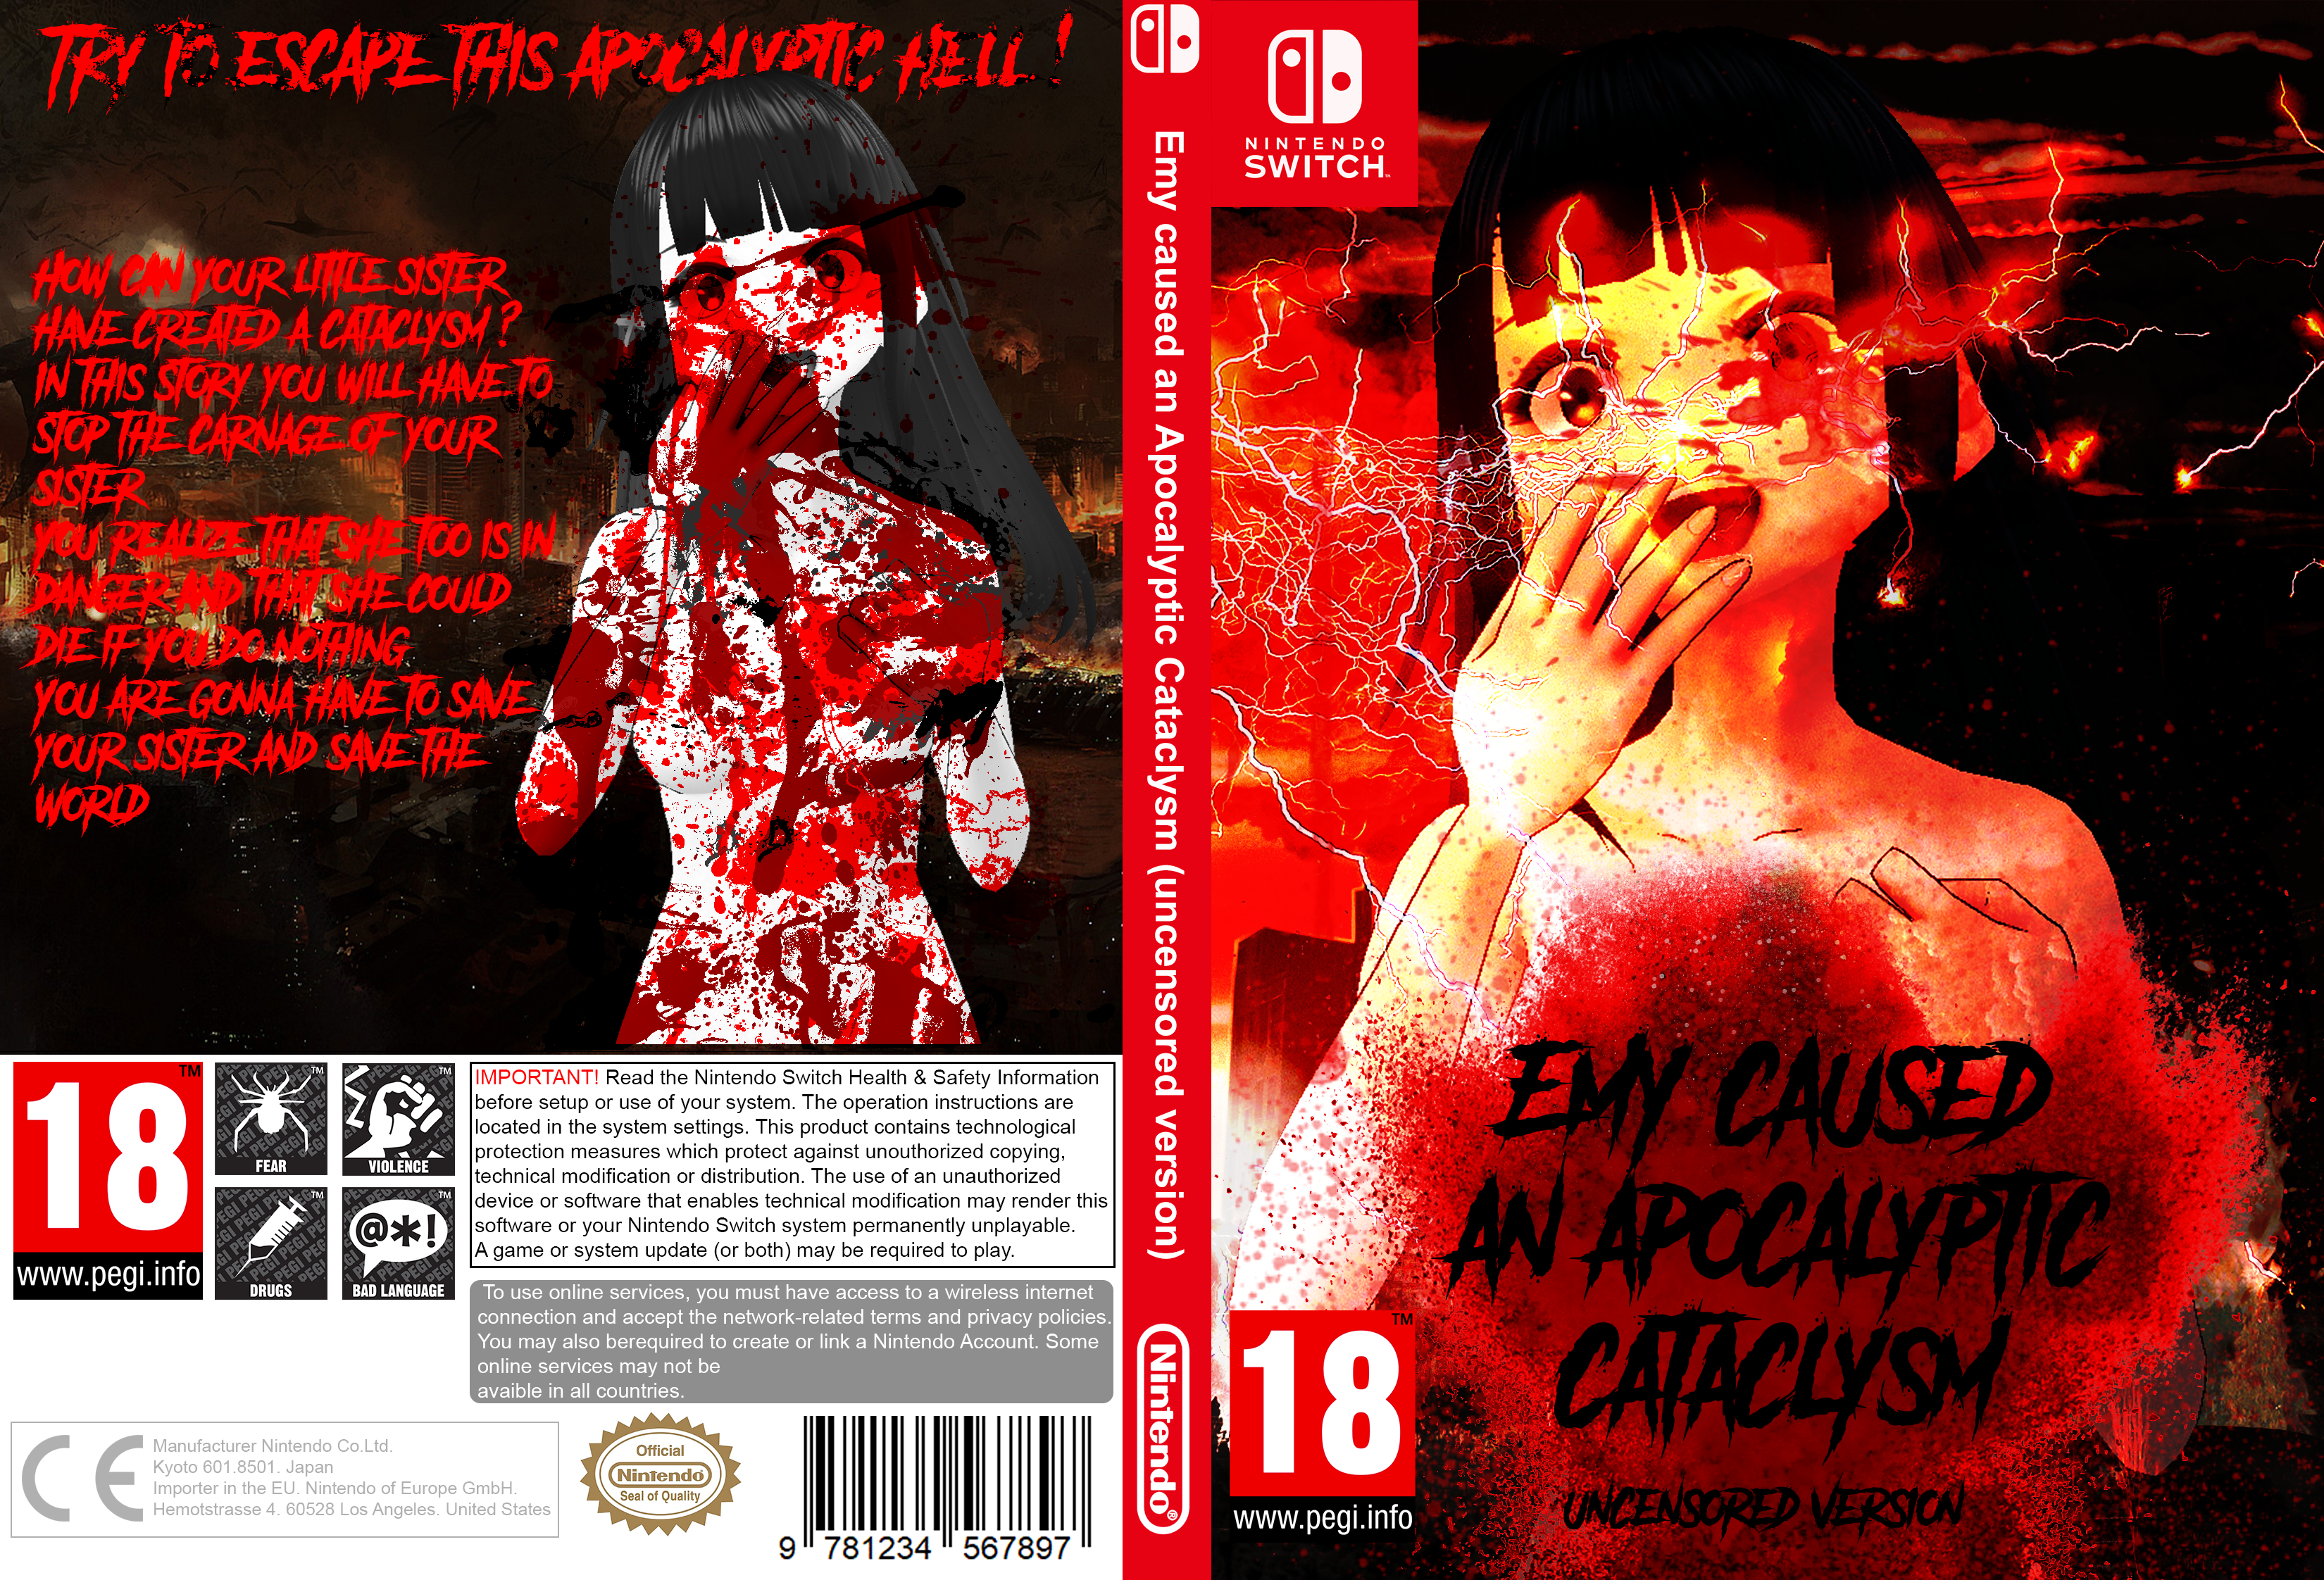 Emy caused an Apocalyptic Cataclysm (uncensed version) [False Switch Game]